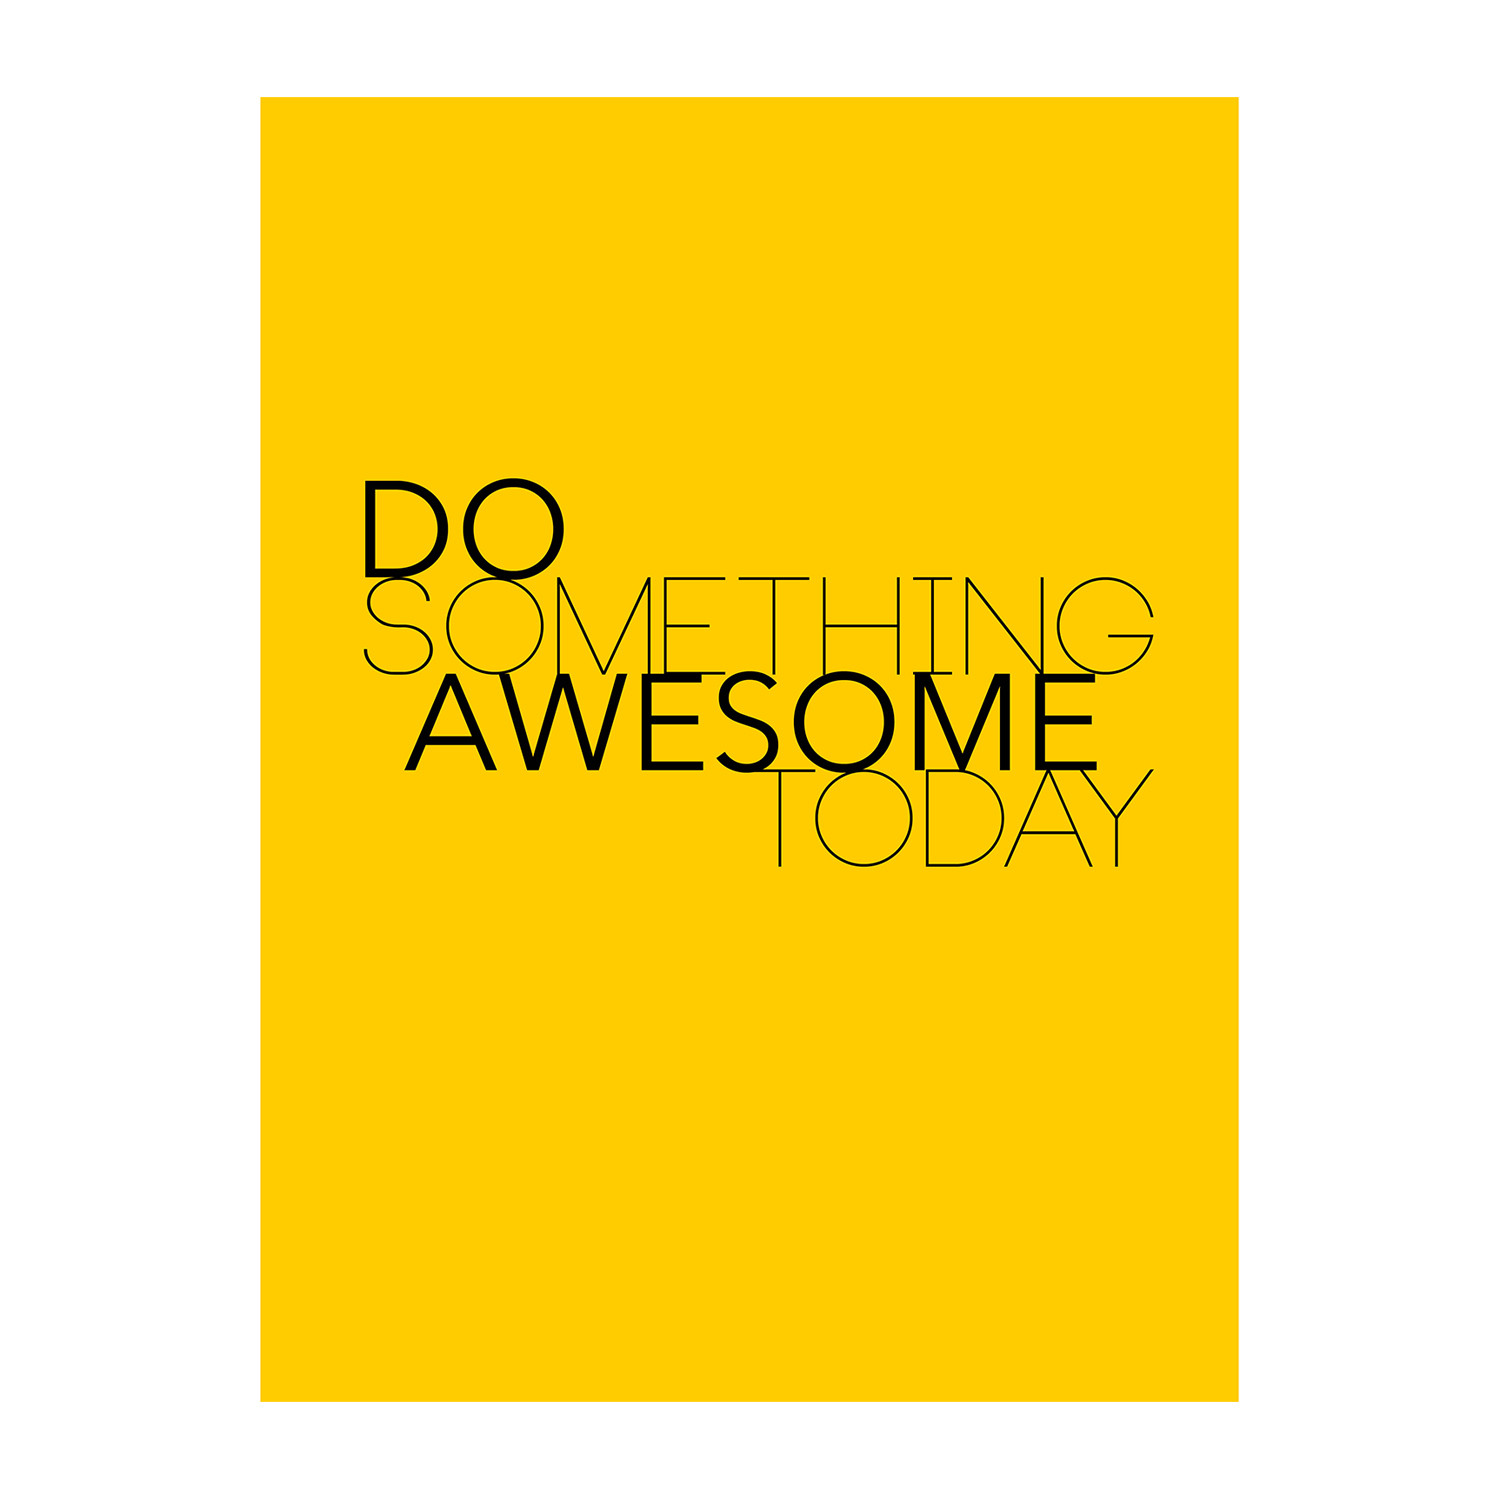 0f581ac356 Do Something Awesome Today - Lifestyle Posters - Touch of Modern